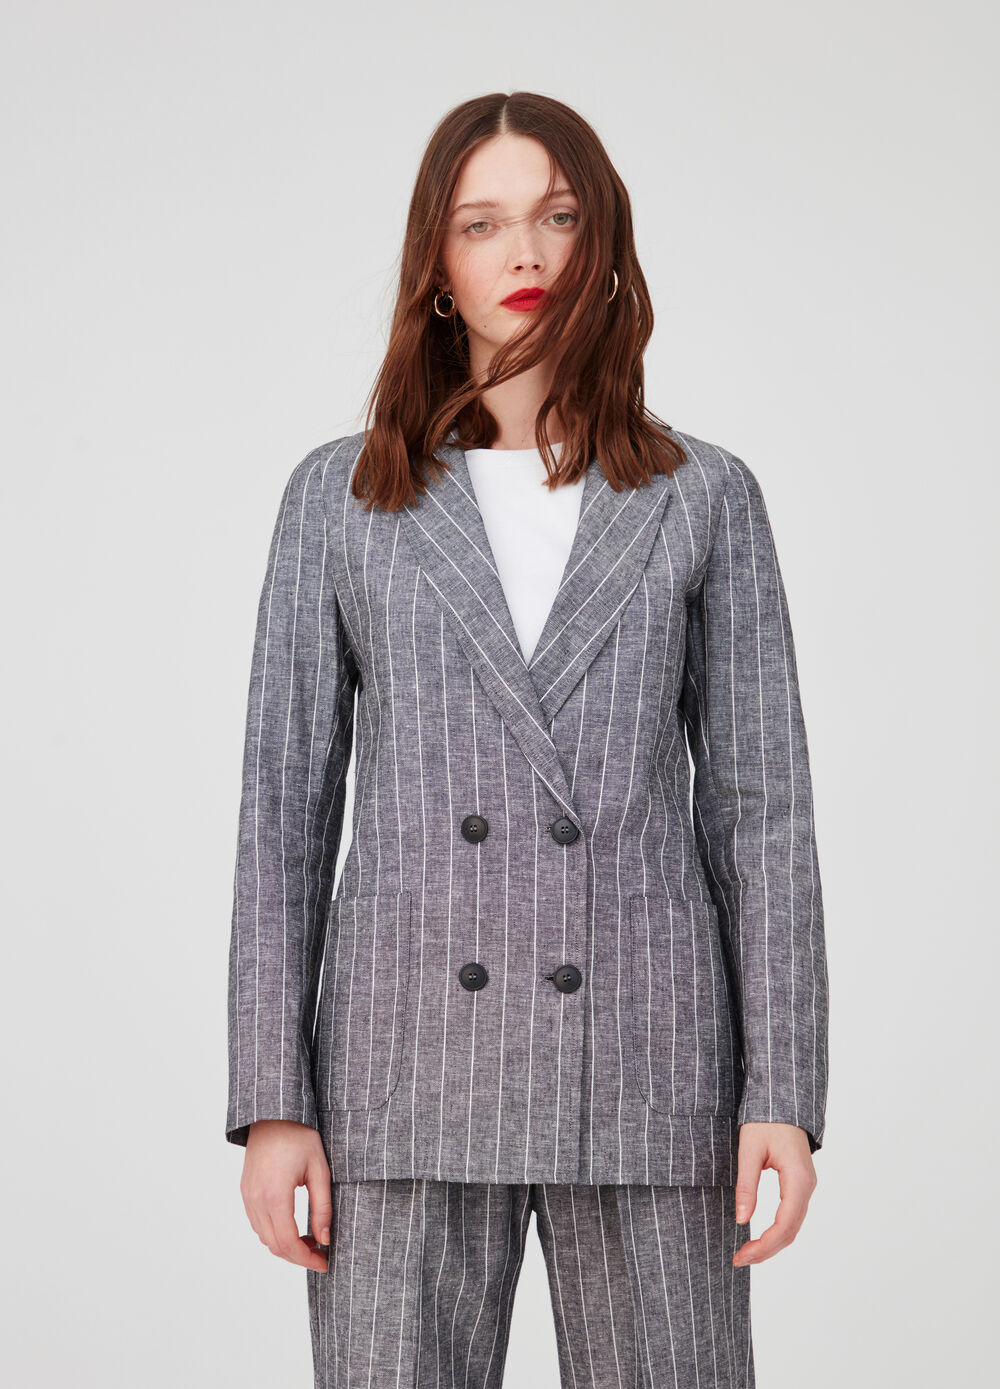 Striped cotton and linen double-breasted blazer